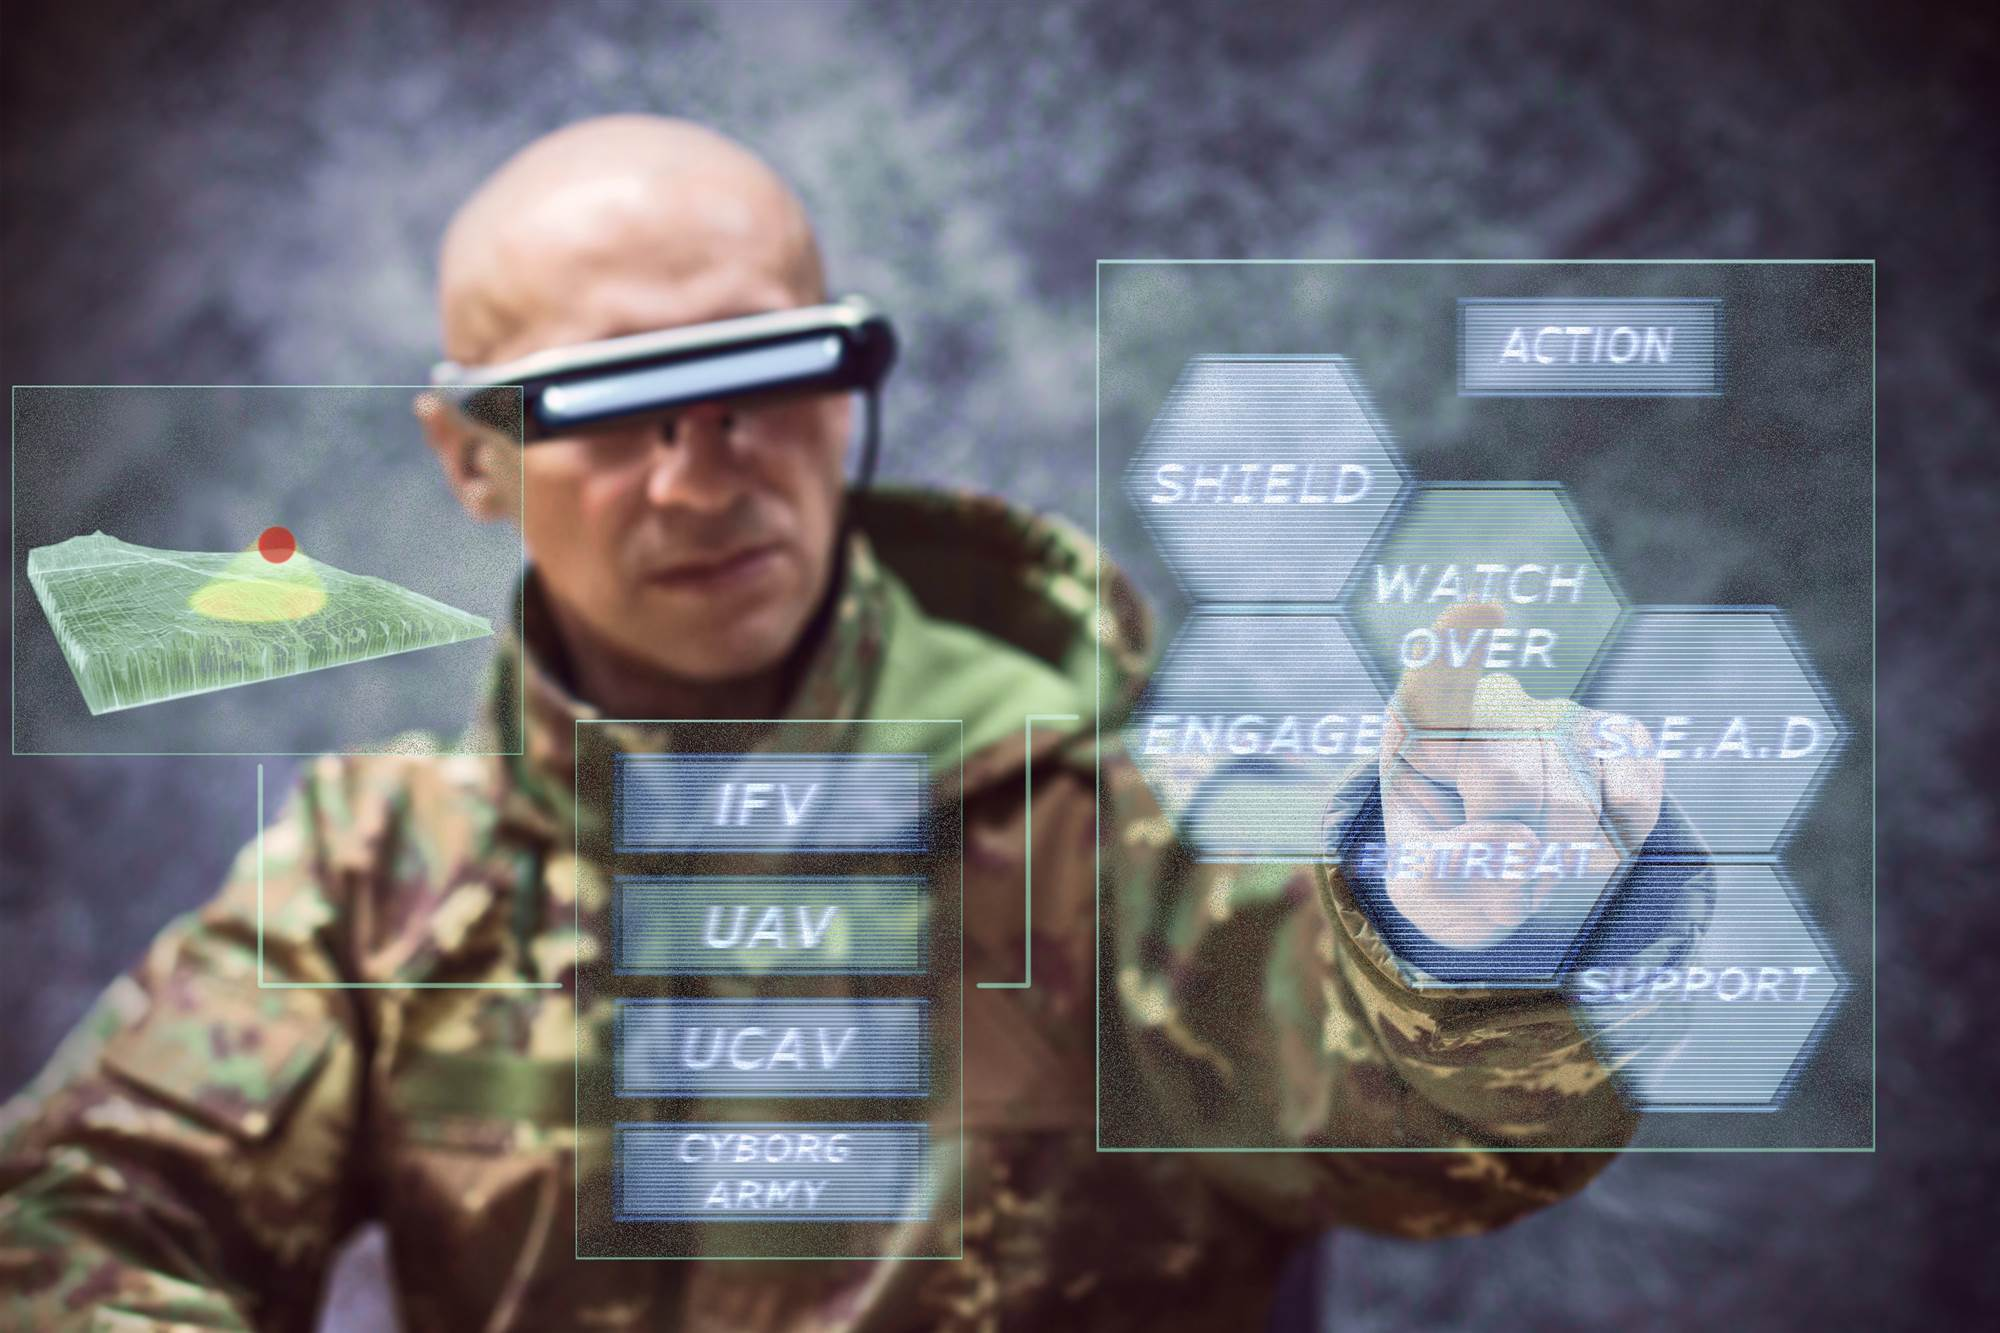 Insiders Promoted To Top Cyber Research Roles At Defence